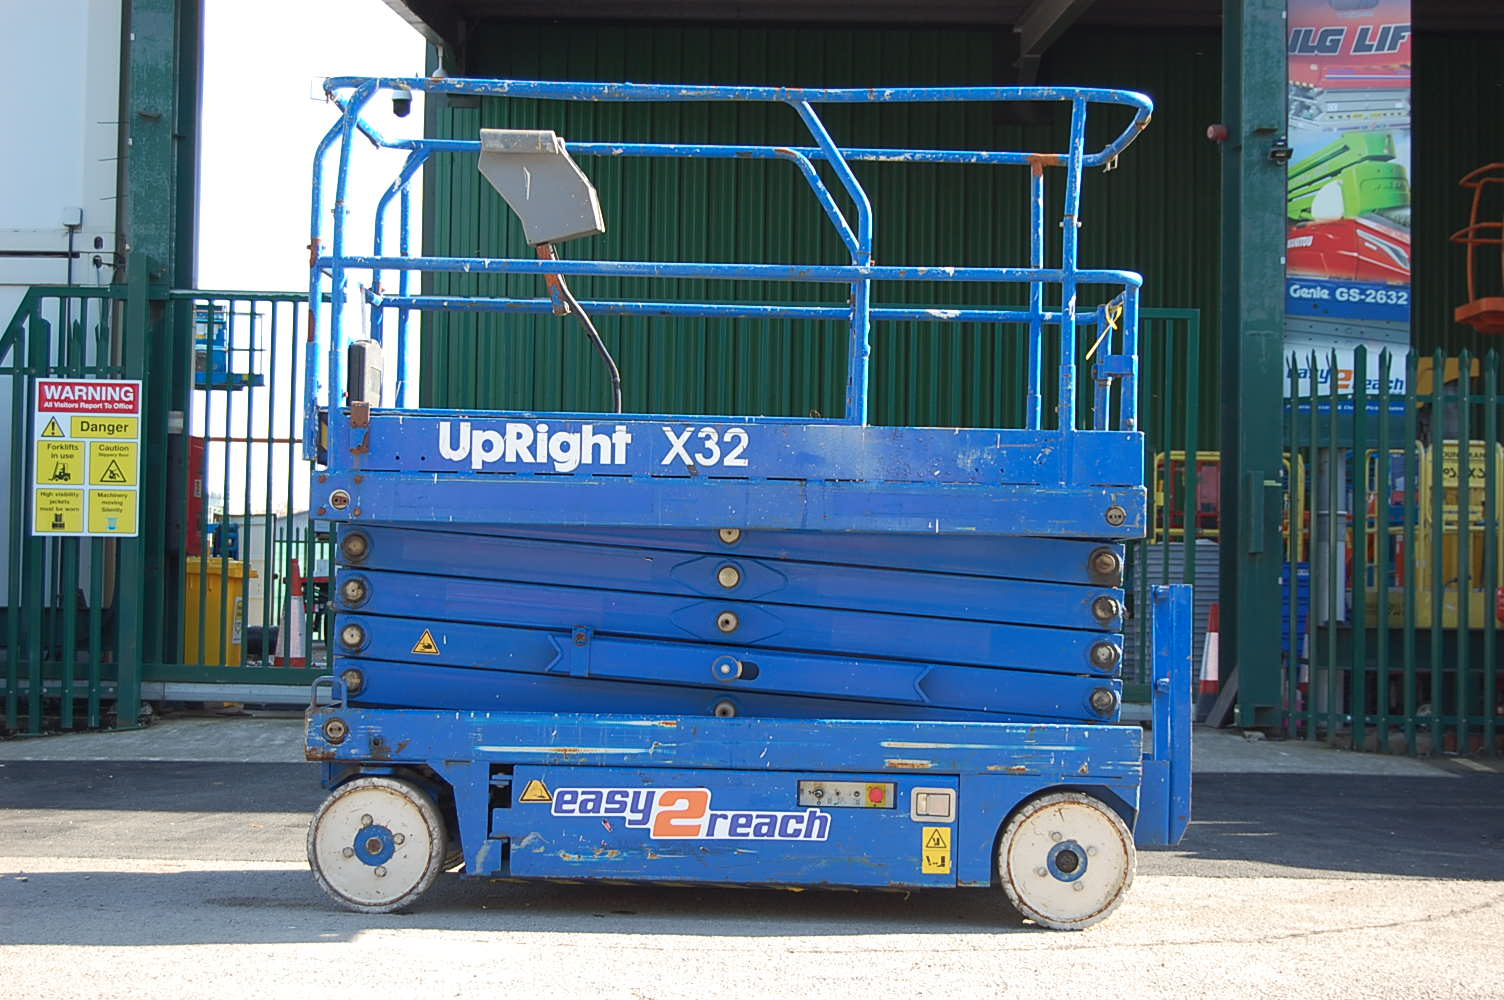 Upright X32 12m Electric Scissor Lift